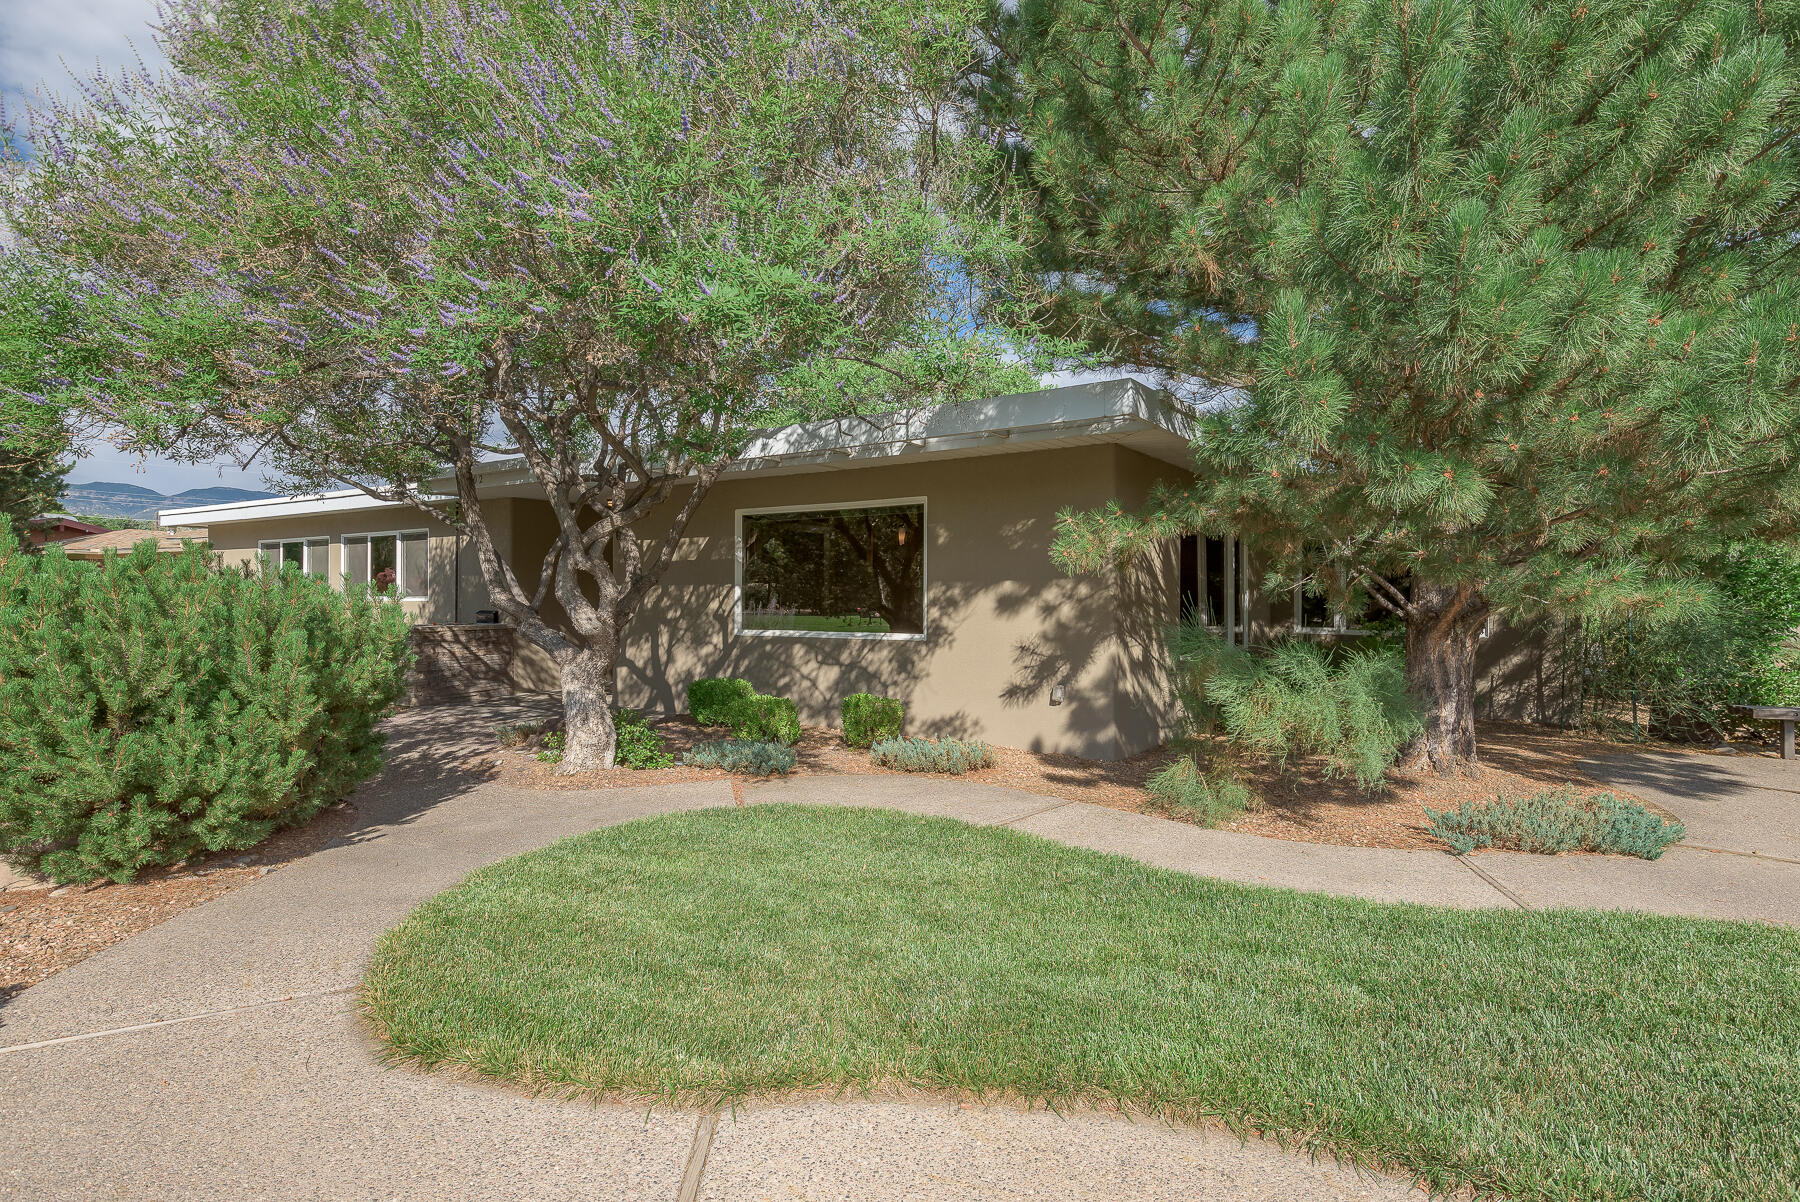 Extraordinary NE, mid-century-modern-transitional situated on La Palomita Park! This spectacular home speaks quality of craftsmanship with hyper-attentive detail to custom quality features: NEW insulated positive-pitched TPO Roof-2019; NEW AC Unit 2021; NEW plush carpet in bedrooms 2, 3, & 4; NEWLY remodeled Master Bath, exquisite modern lines with quartz waterfall vanity; Stunning Bellawood Brazilian Koa Tiger flooring in living, formal dining, and MBR; Kitchen boasts Ash Wood cabinetry with custom slide-outs, ''Red Dragon'' Level 5 granite tops, SS KitchenAide appliances; Milgard windows/exterior doors with bronze-tint, some mirrored. Lovely, quaint, fully irrigated, mature, professional landscape complete with gunite swimming pool and rec room. Come see this architectural delight!